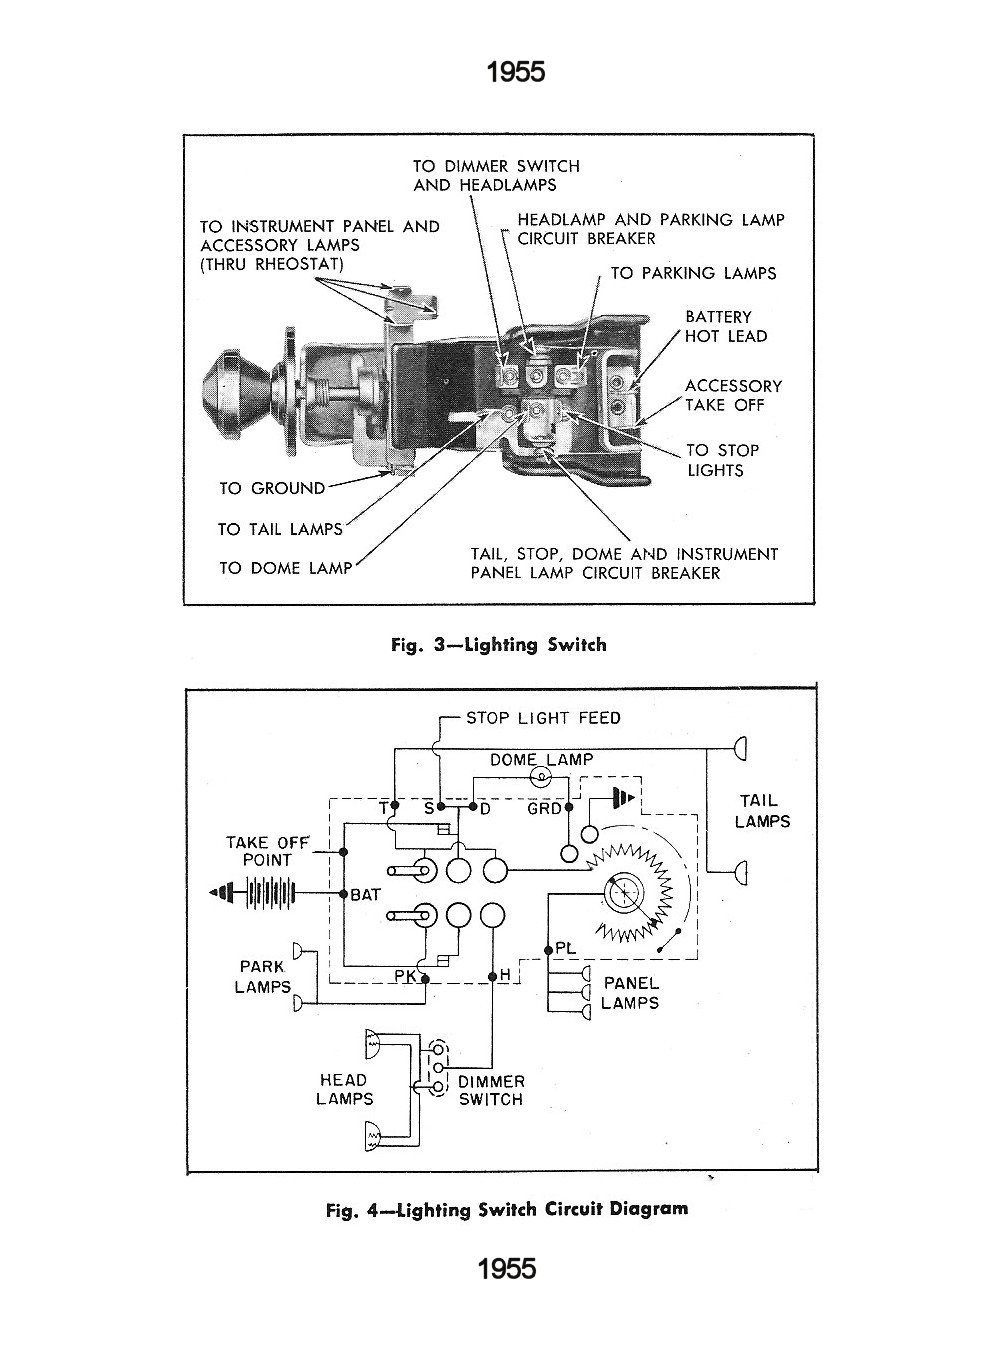 55csm1204a chevy wiring diagrams headlight switch wiring diagram chevy truck at crackthecode.co